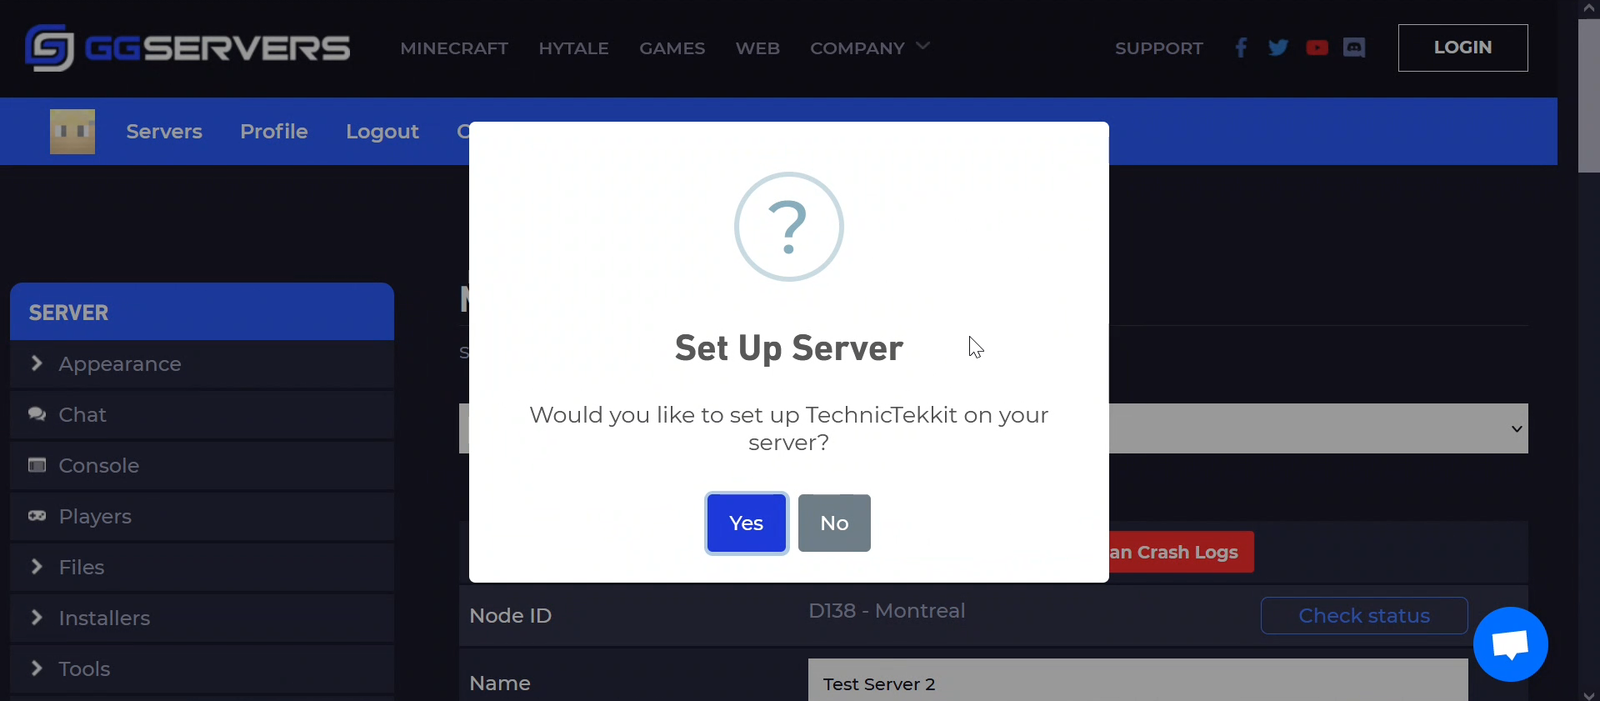 Do you want to setup your server with Tekkit?